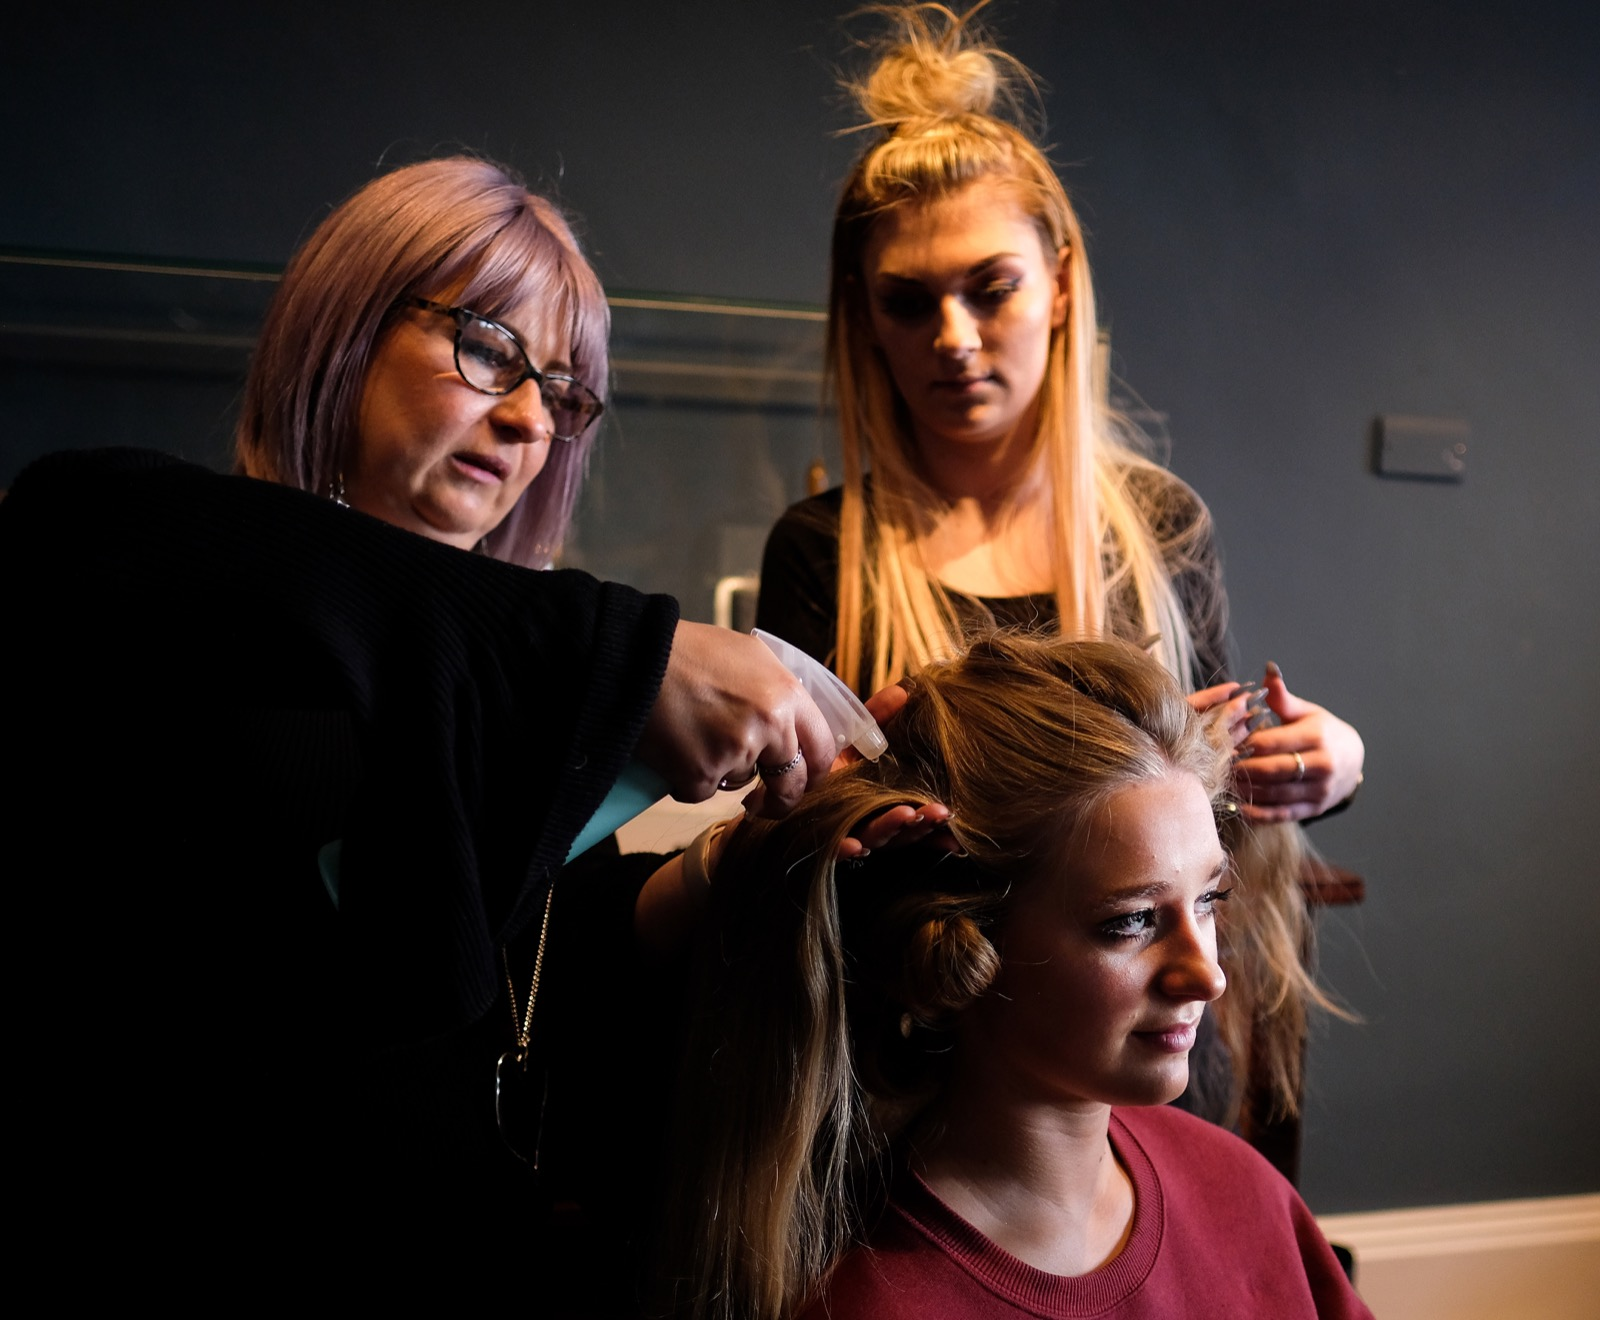 Behind the Scenes at York Fashion Show: Pictures